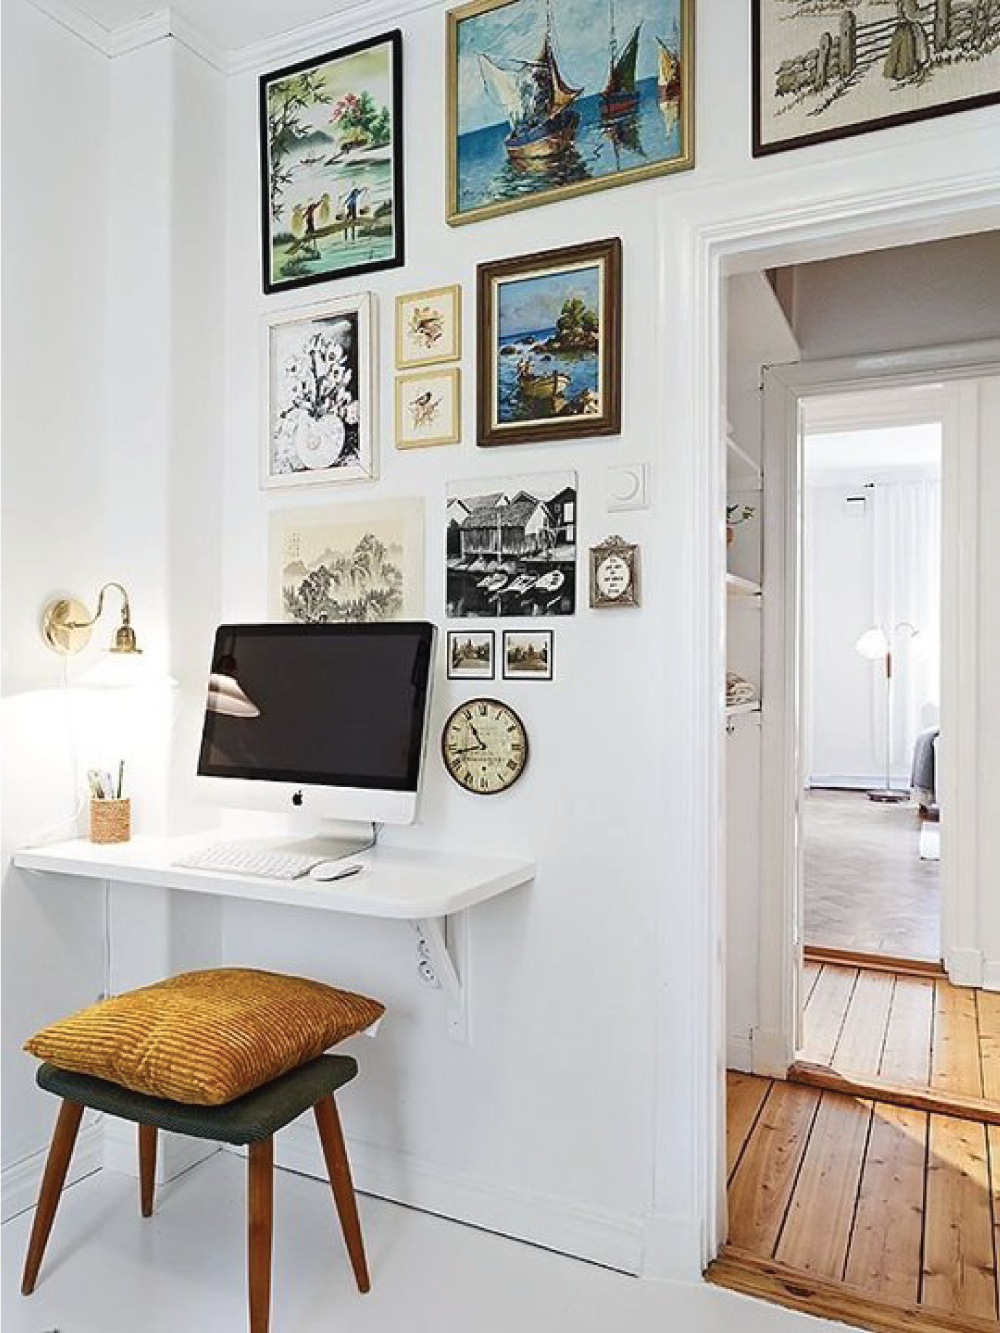 - 15 Very Small Desk Ideas That Will Surprise You With The Functionality